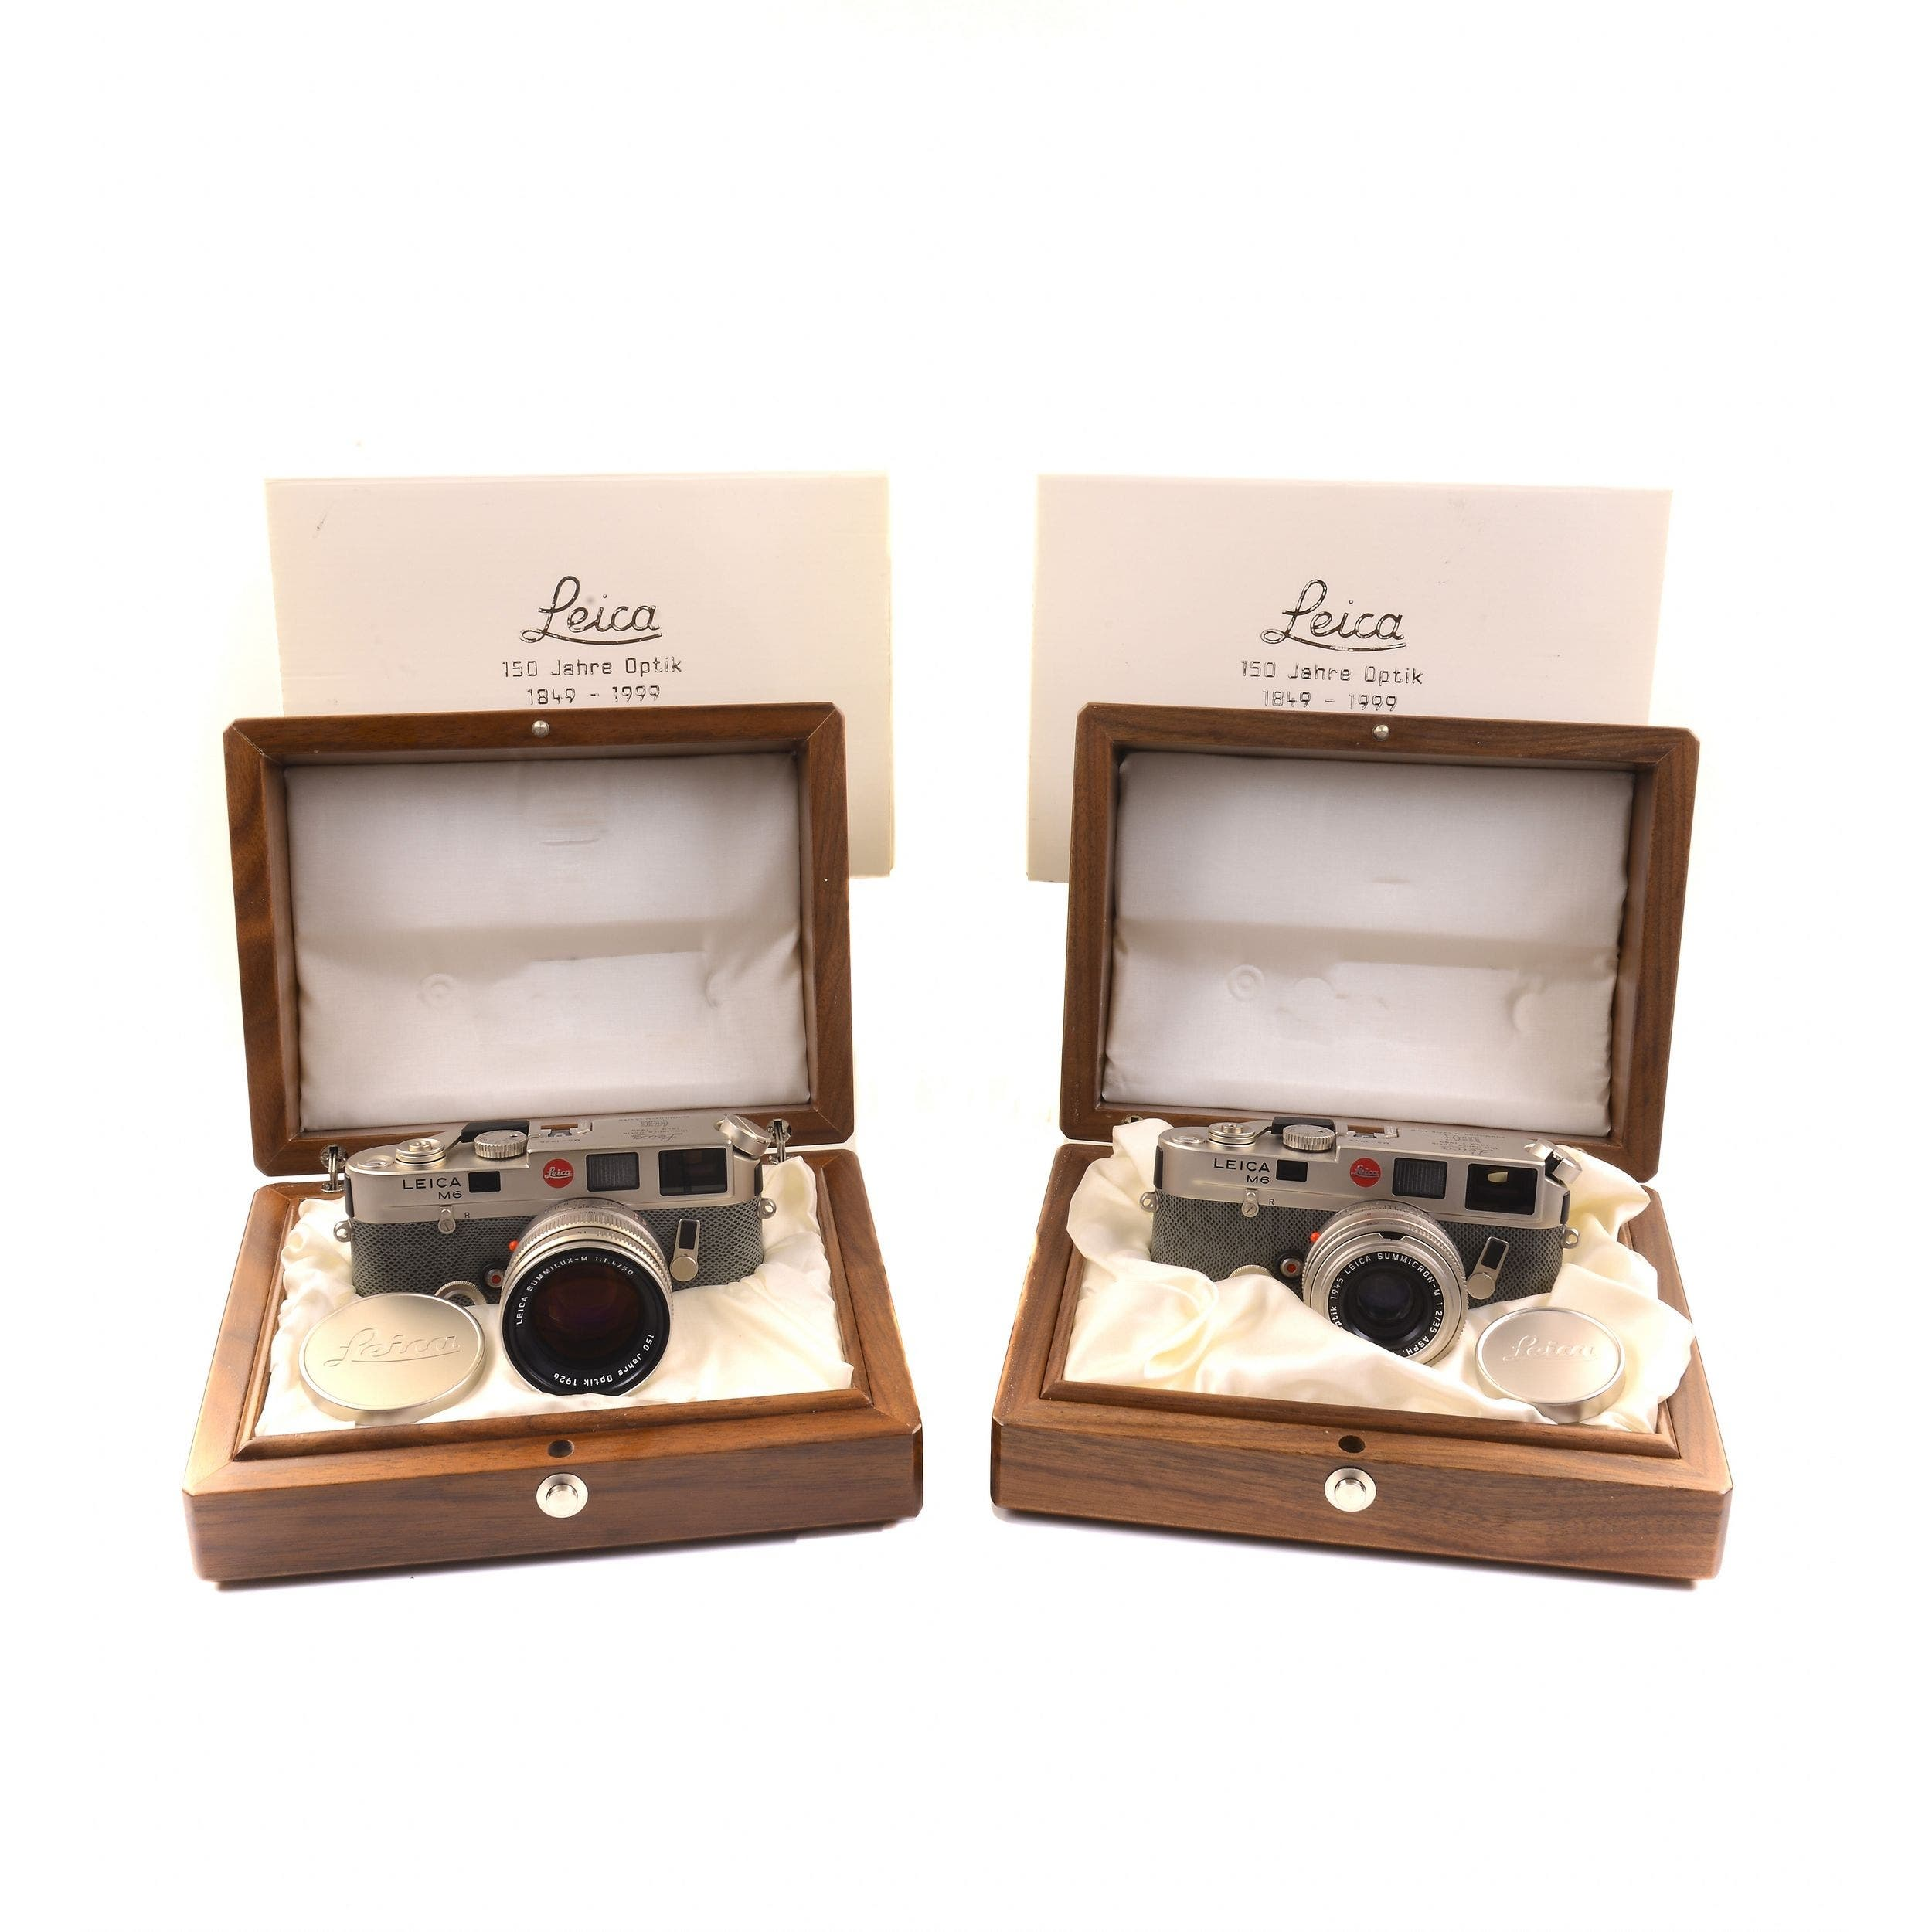 Two Limited Edition Leica M6 Platinum Cameras Currently Up for Grabs on ebay